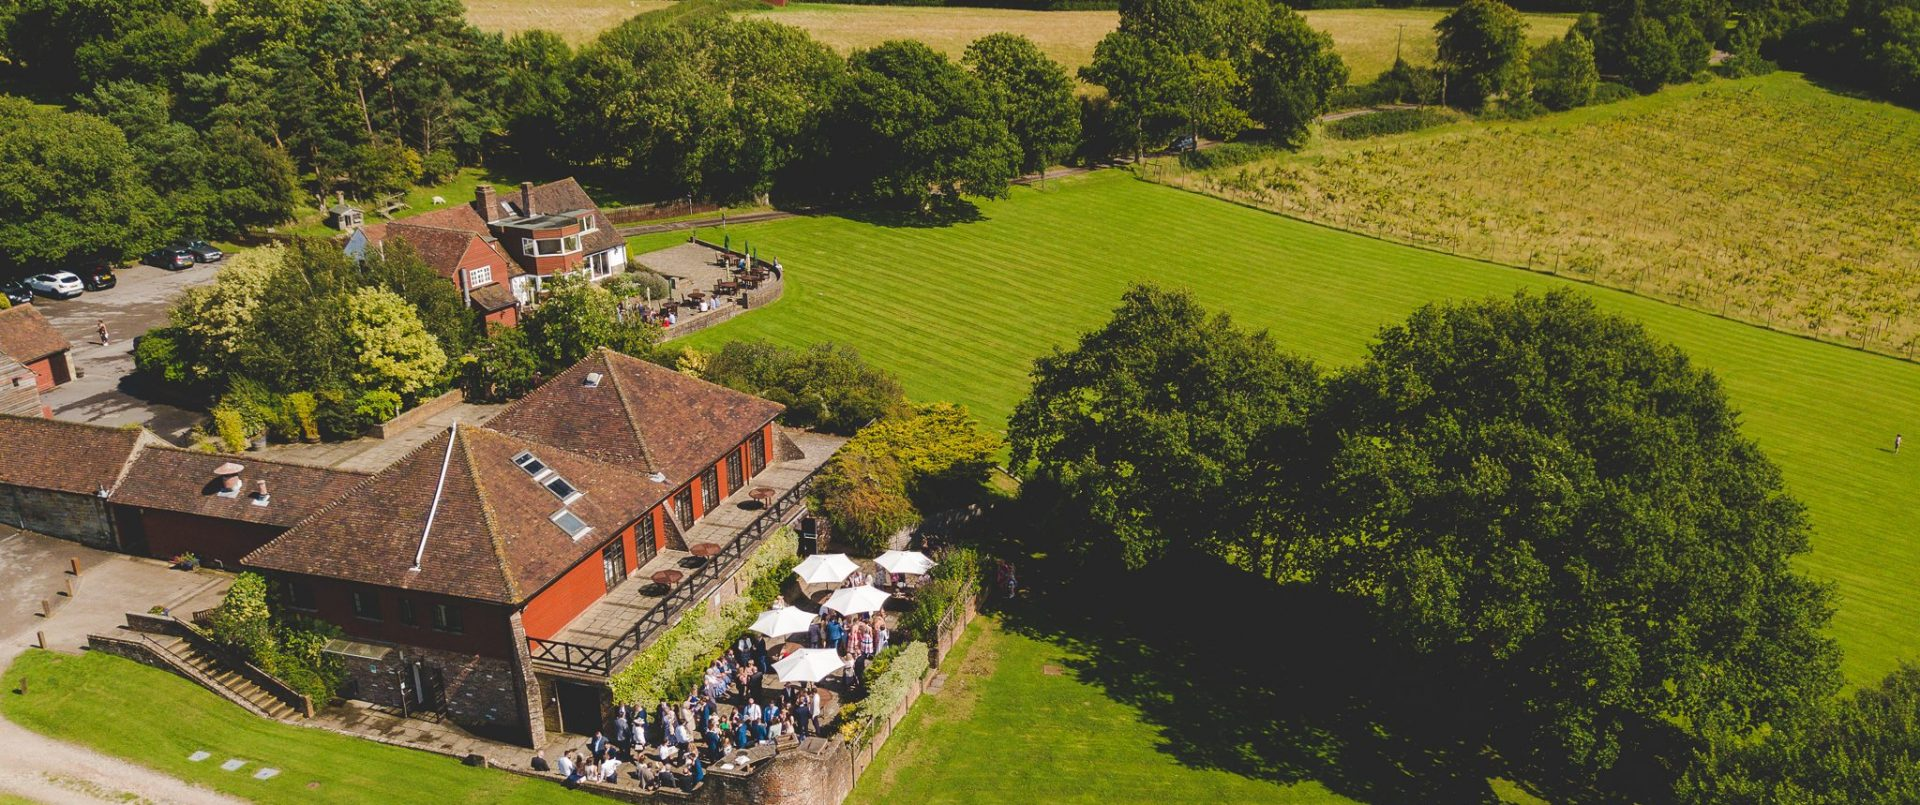 Barnsgate Manor for hire